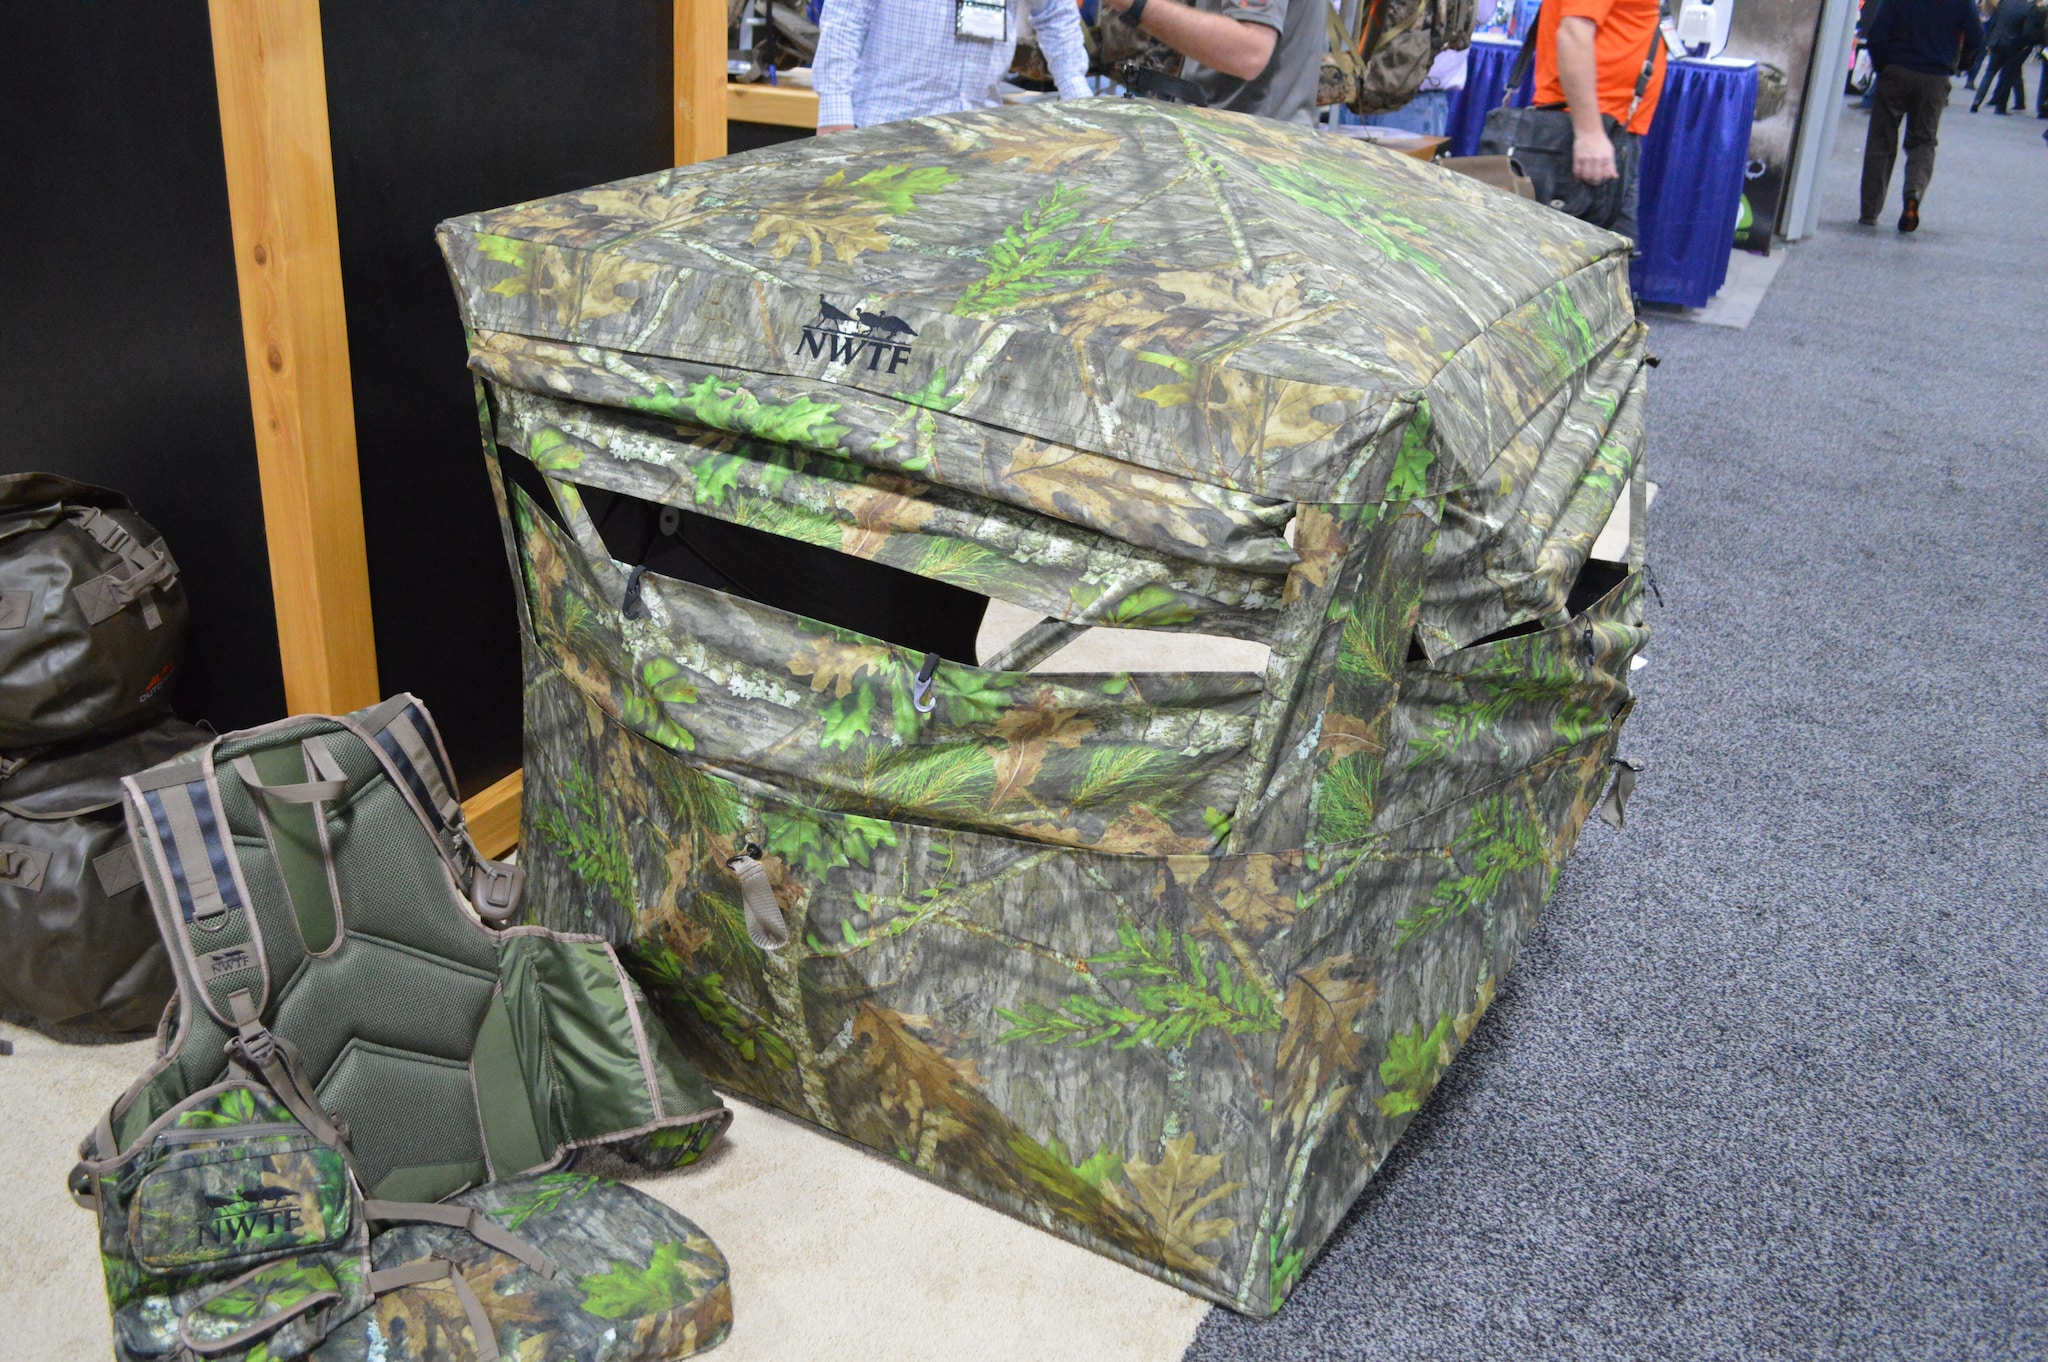 The ultra-compact Alps Outdoorz/NWTF Deception ground blind is the first in its class of low-profile blinds made for the hunter who likes to run-and-gun. Sitting in either a low chair or in one of the company's vests puts the shooter at the perfect height in this blind, which has a center height of less than four feet and packs down small enough to fit in a vest pocket. (Photo: Kristin Alberts/Guns.com)